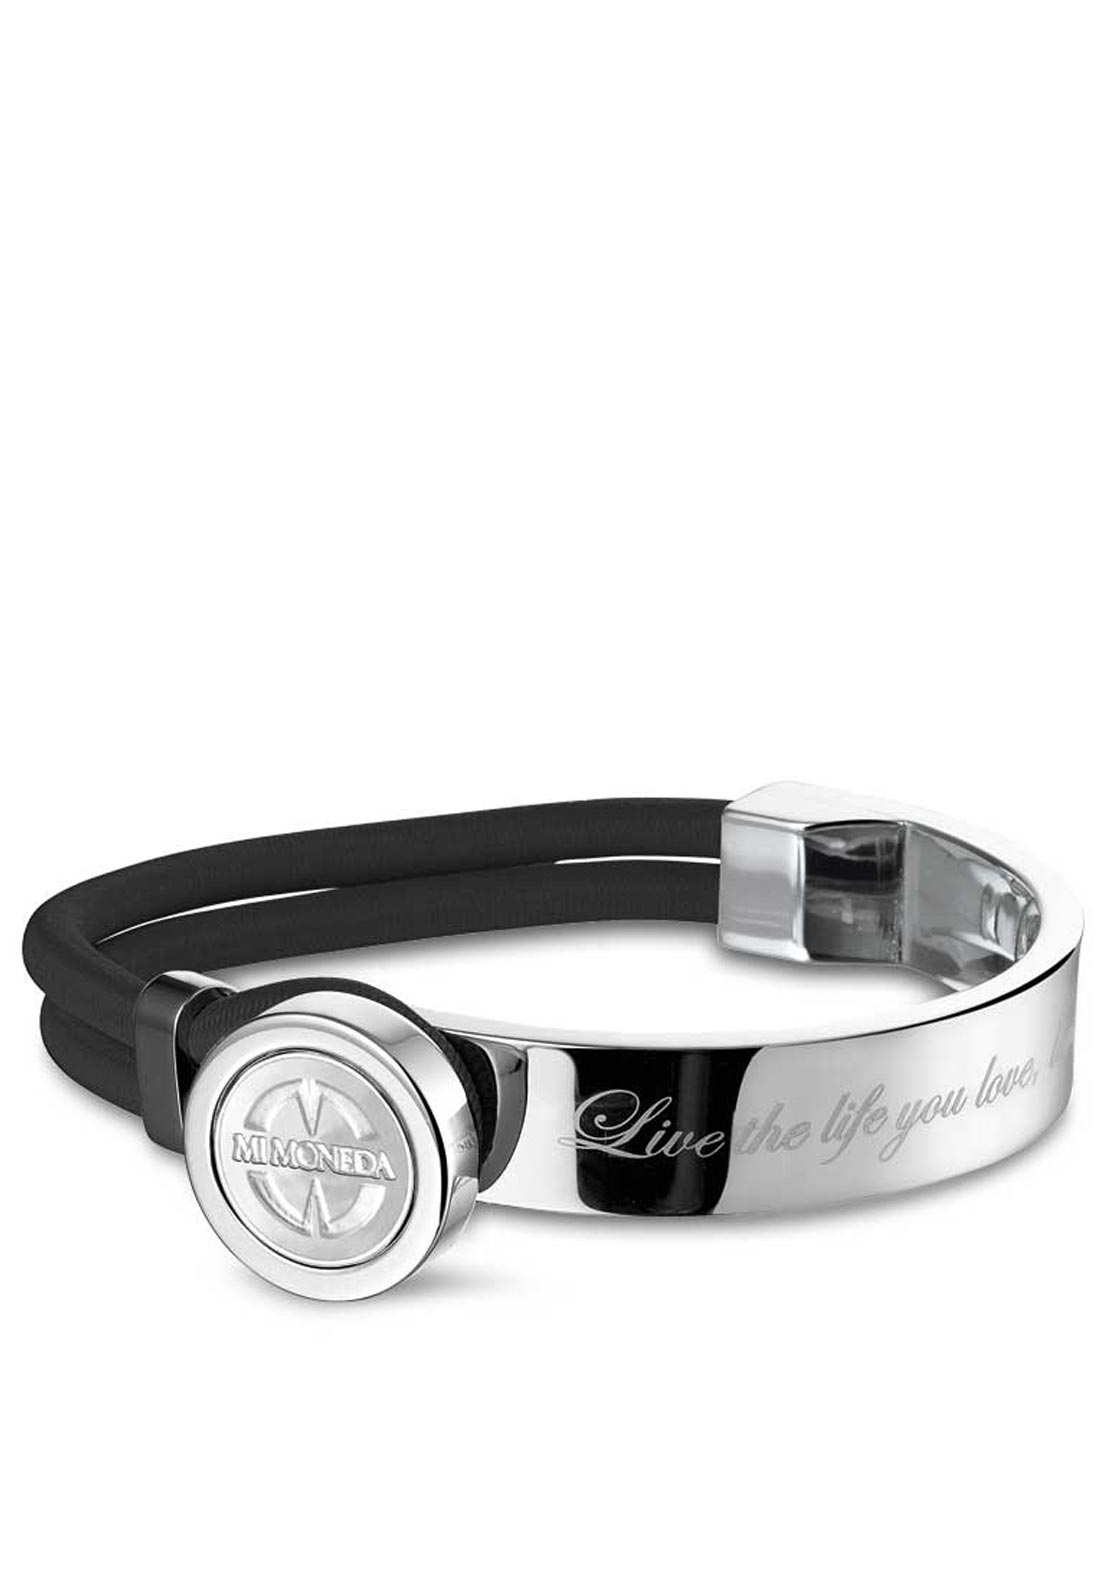 Mi Moneda Stainless Steel Verano Bracelet, Black